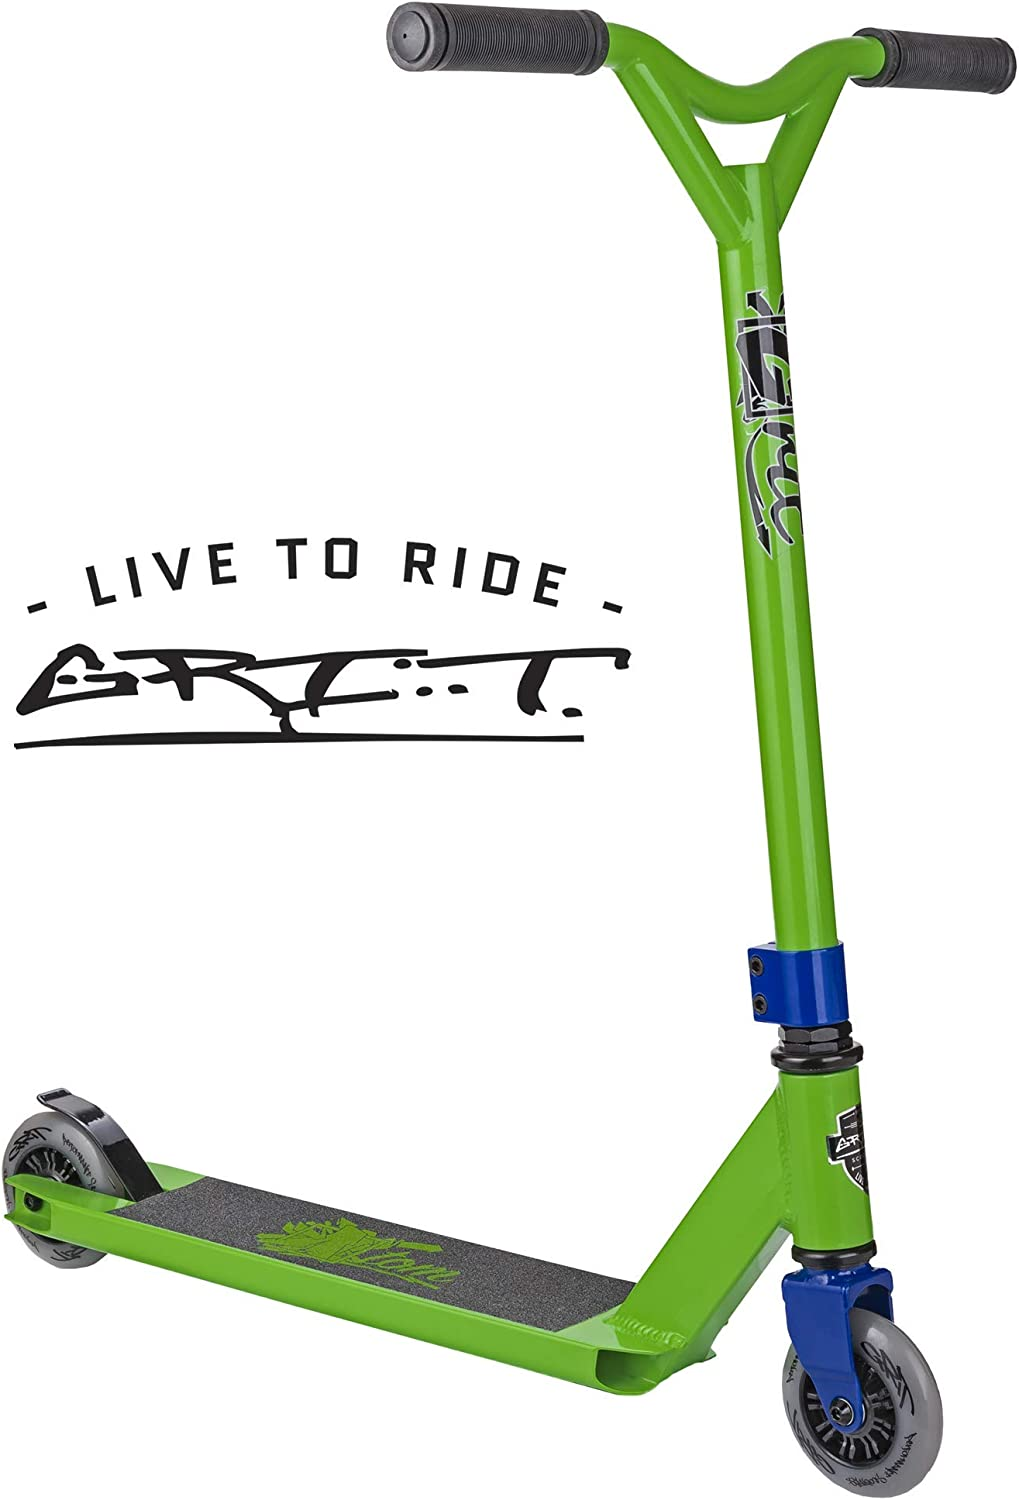 Grit Atom Pro Scooter – Stunt Scooter – Trick Scooter – Beginner Intermediate Pro Scooter – for Kids Ages 6 and Heights 4.0ft-5.5ft